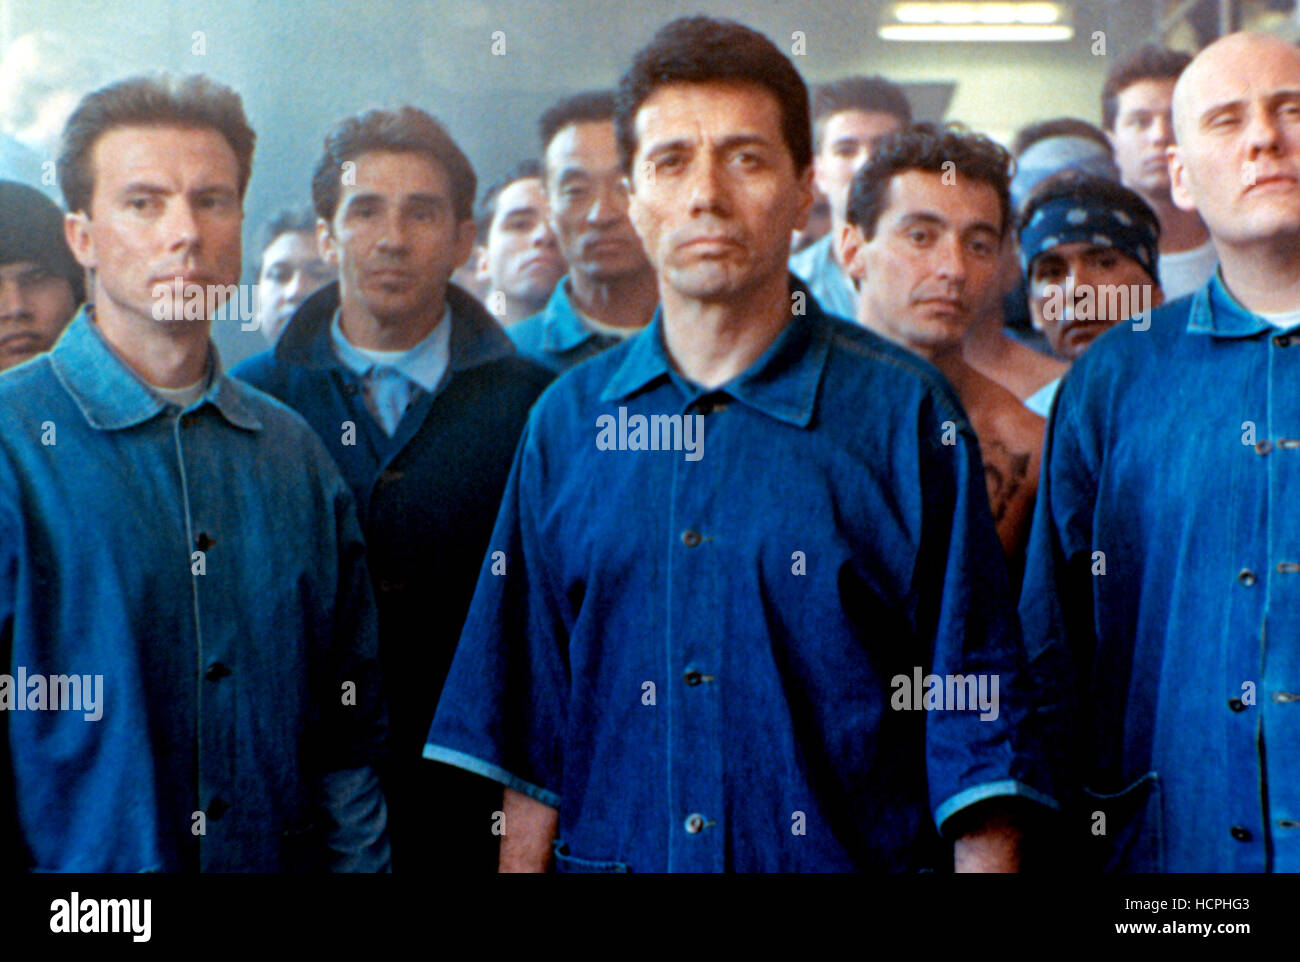 an analysis of the movie american me by edward james olmos Keywords: american me, edward james olmos, prison, masculinity, macho   this brief summary of the narrative line of the movie shows that santana's.